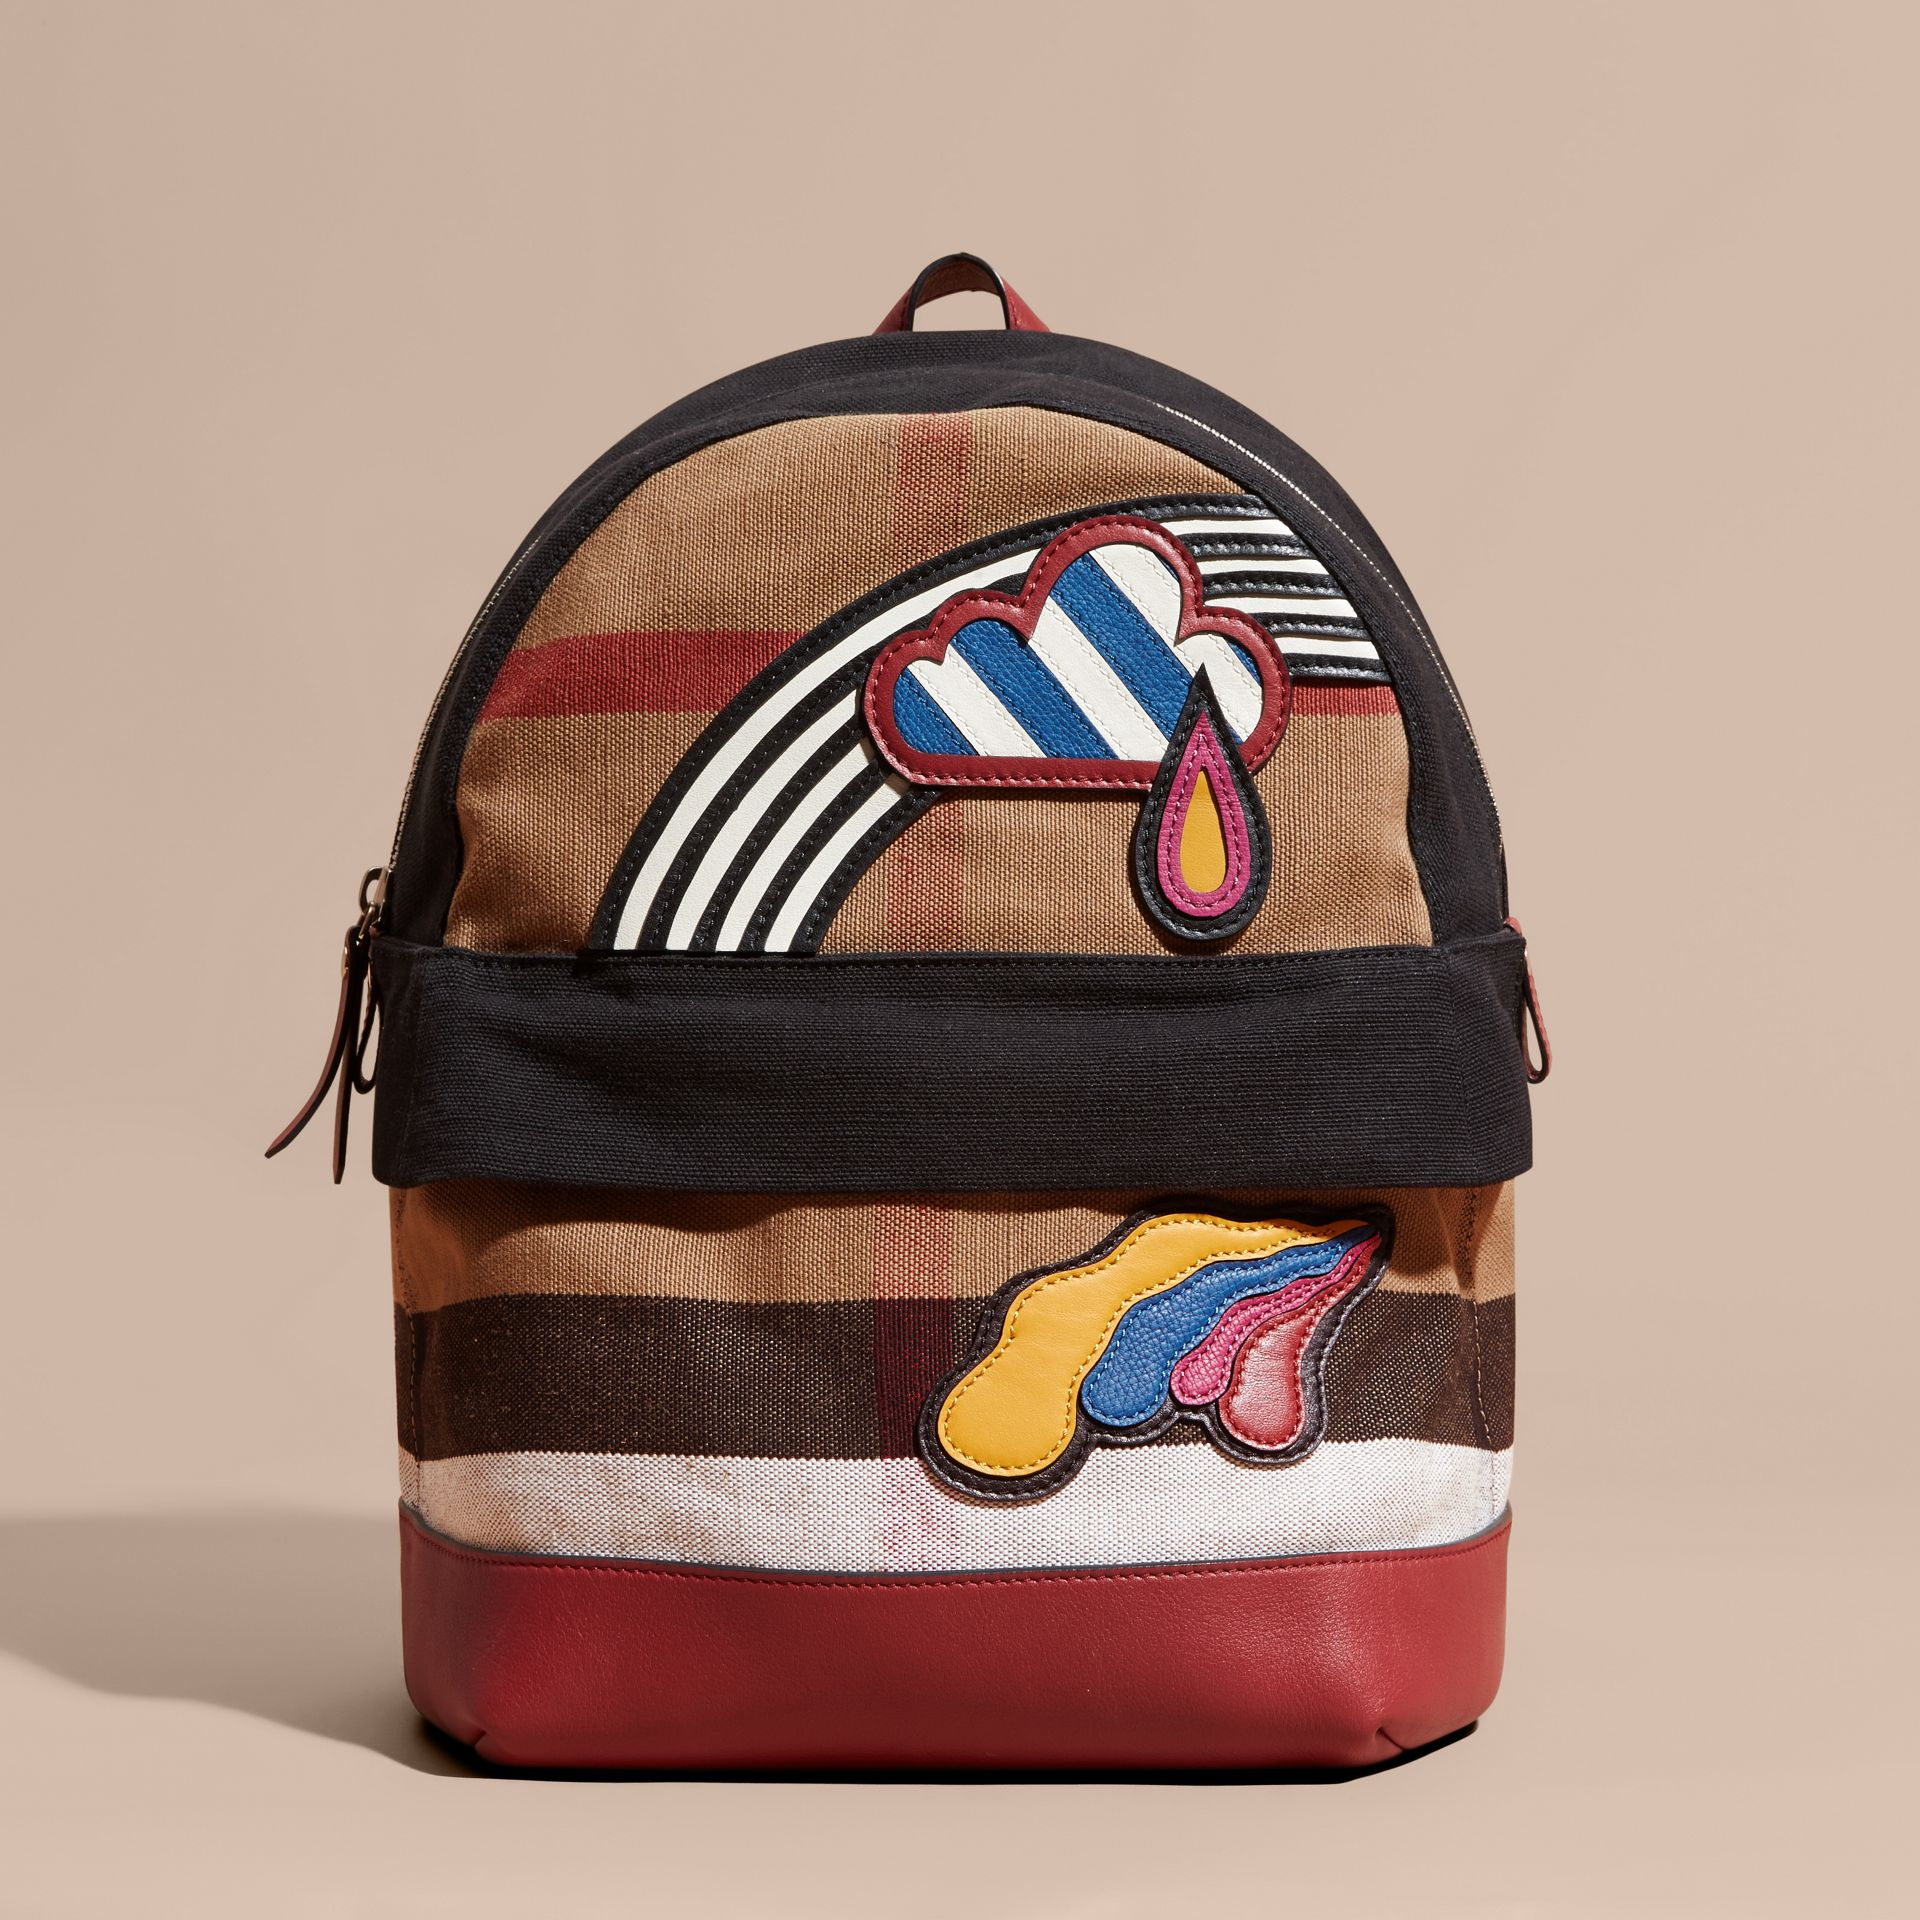 Appliquéd Weather Graphic Check and Leather Backpack - gallery image 6